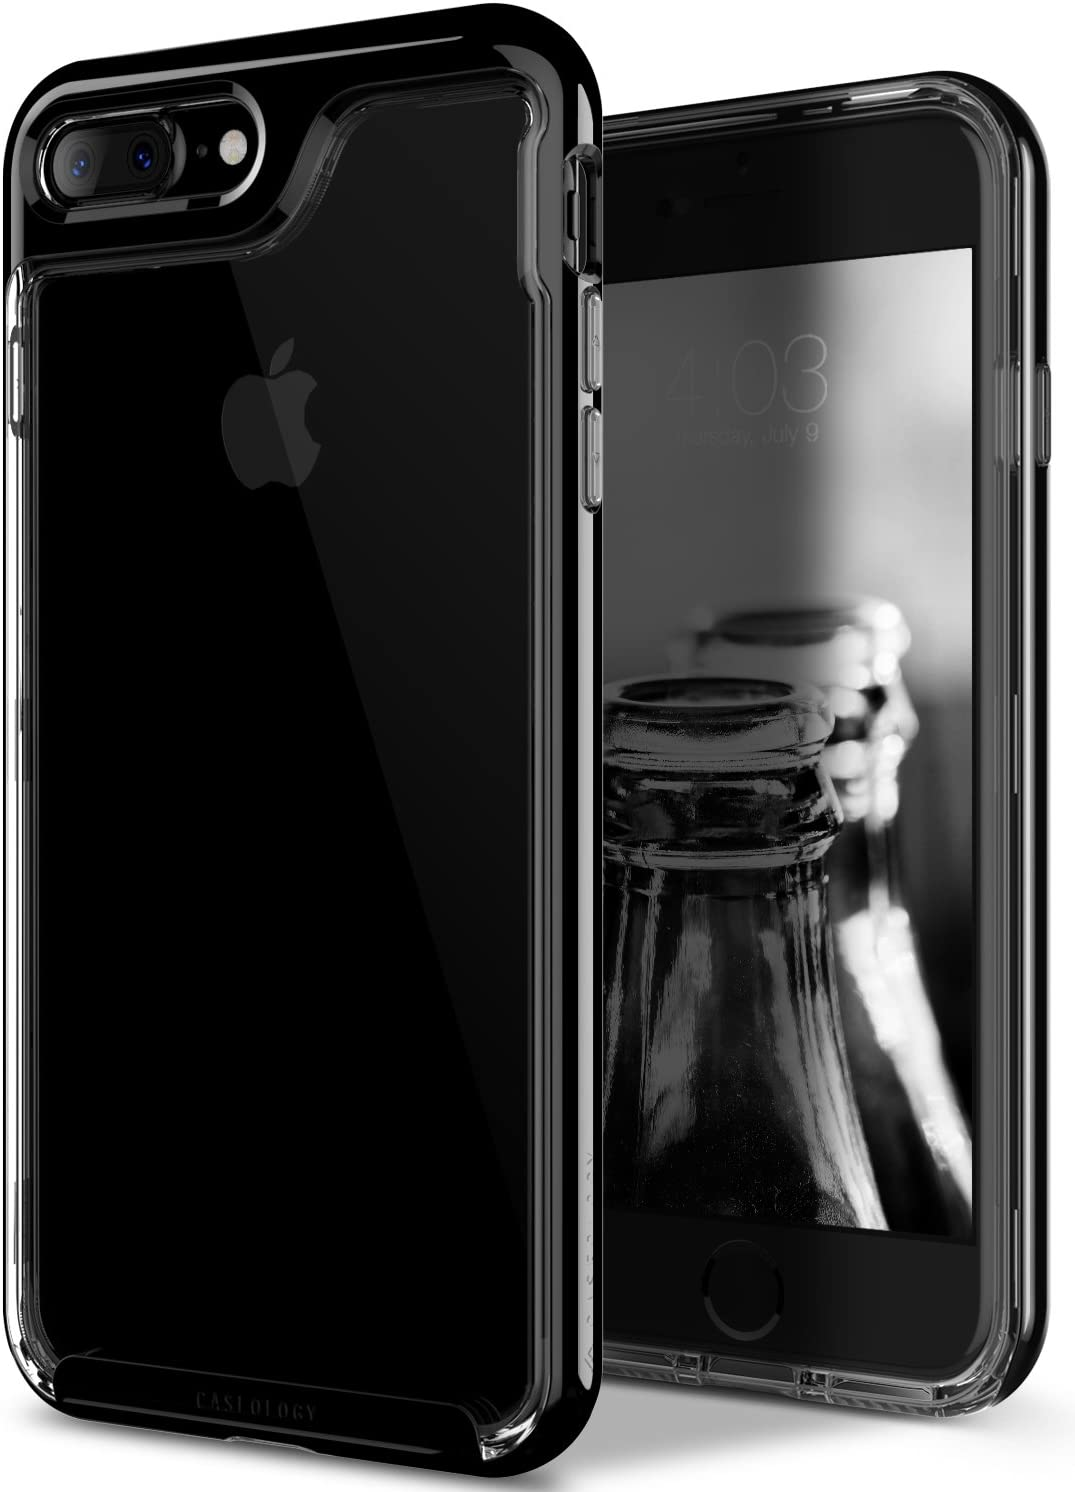 Caseology Skyfall for iPhone 8 Plus Case (2017) / iPhone 7 Plus Case (2016) - Clear Back & Slim Fit - Jet Black